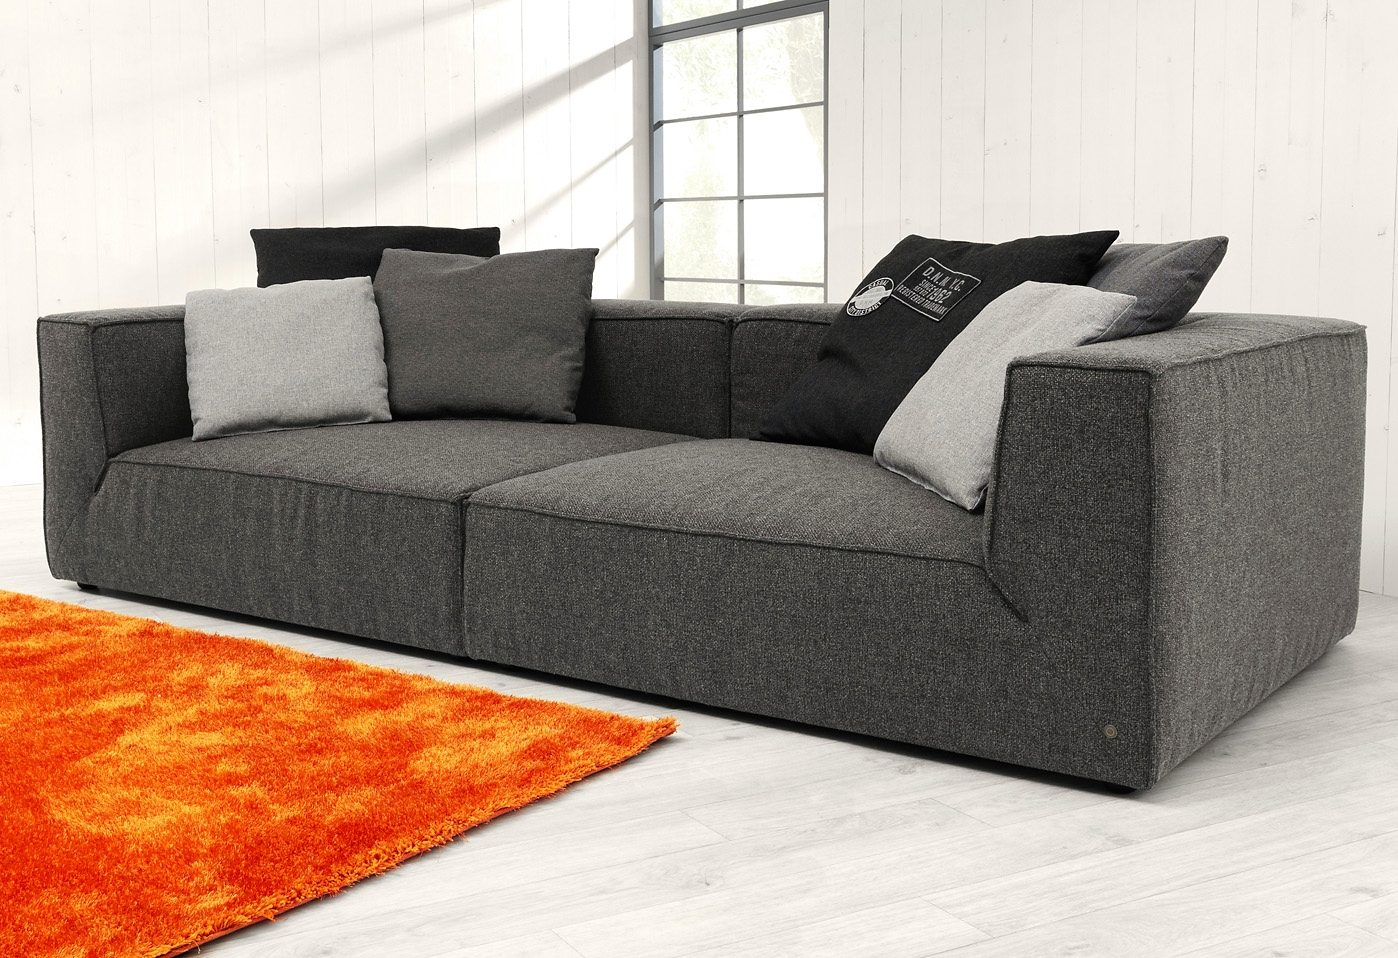 Stylische Sofas Tom Tailor Big-sofa »big Cube«, Wahlweise Mit